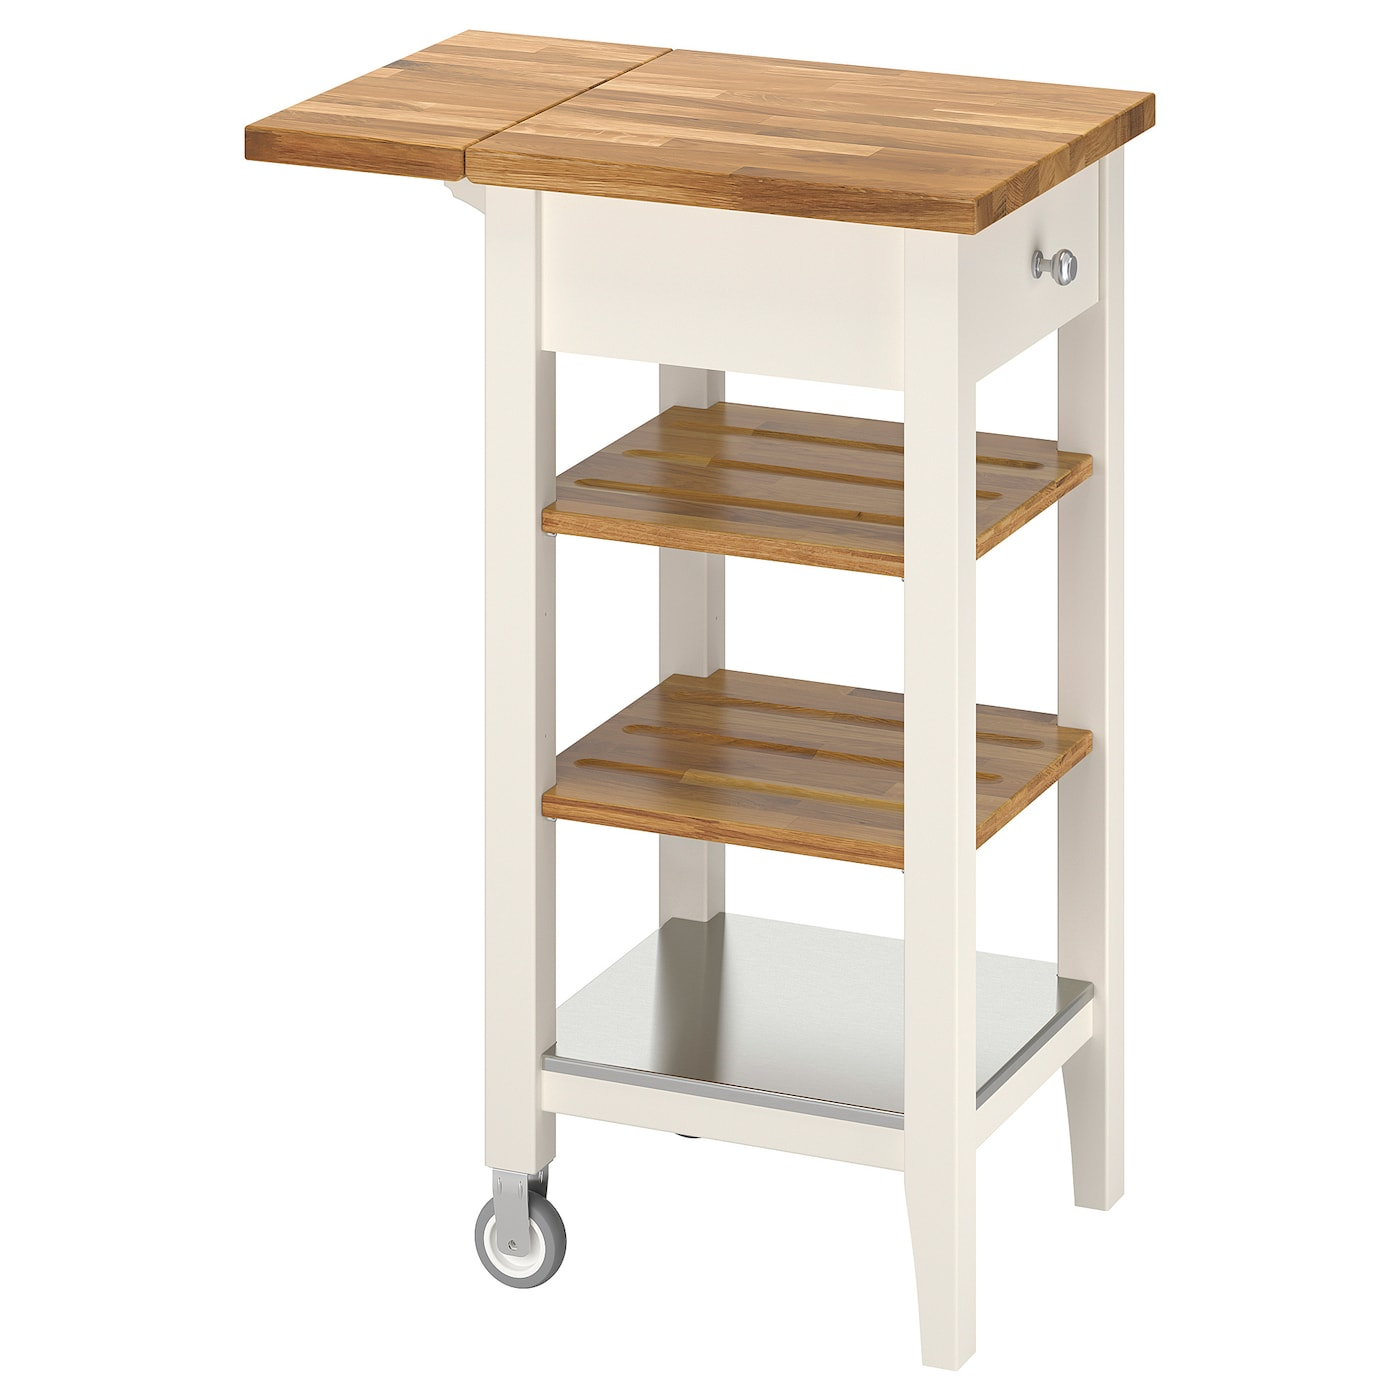 STENSTORP Kitchen trolley - white/oak 8x8x8 cm